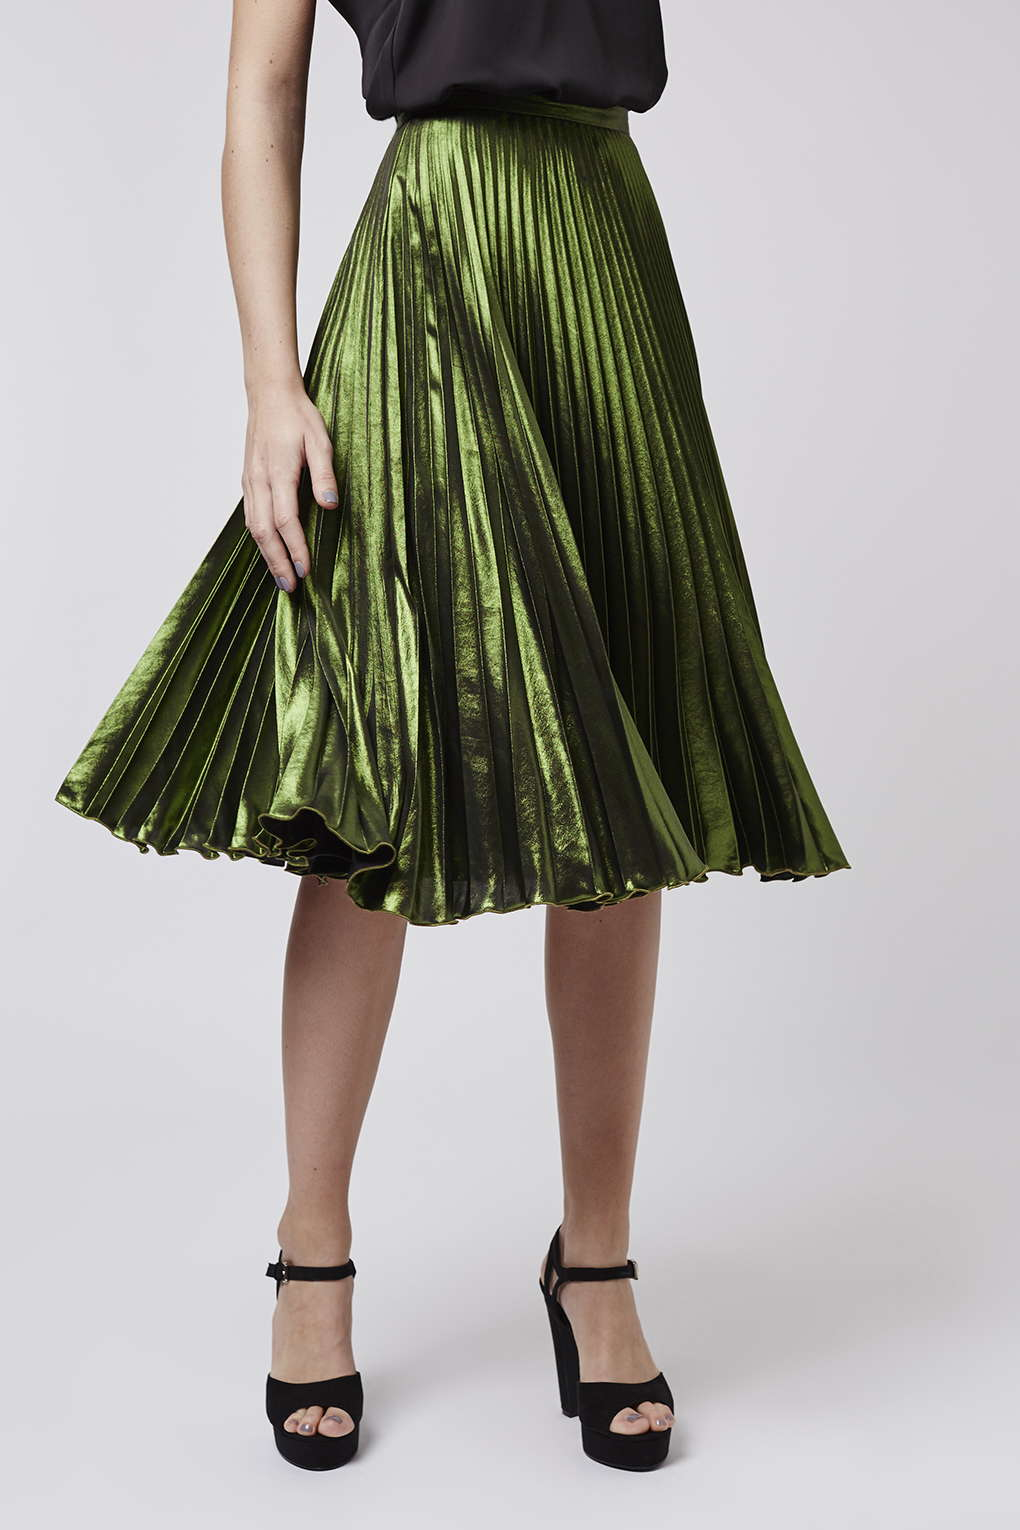 Green Pleated Skirt - Dress Ala